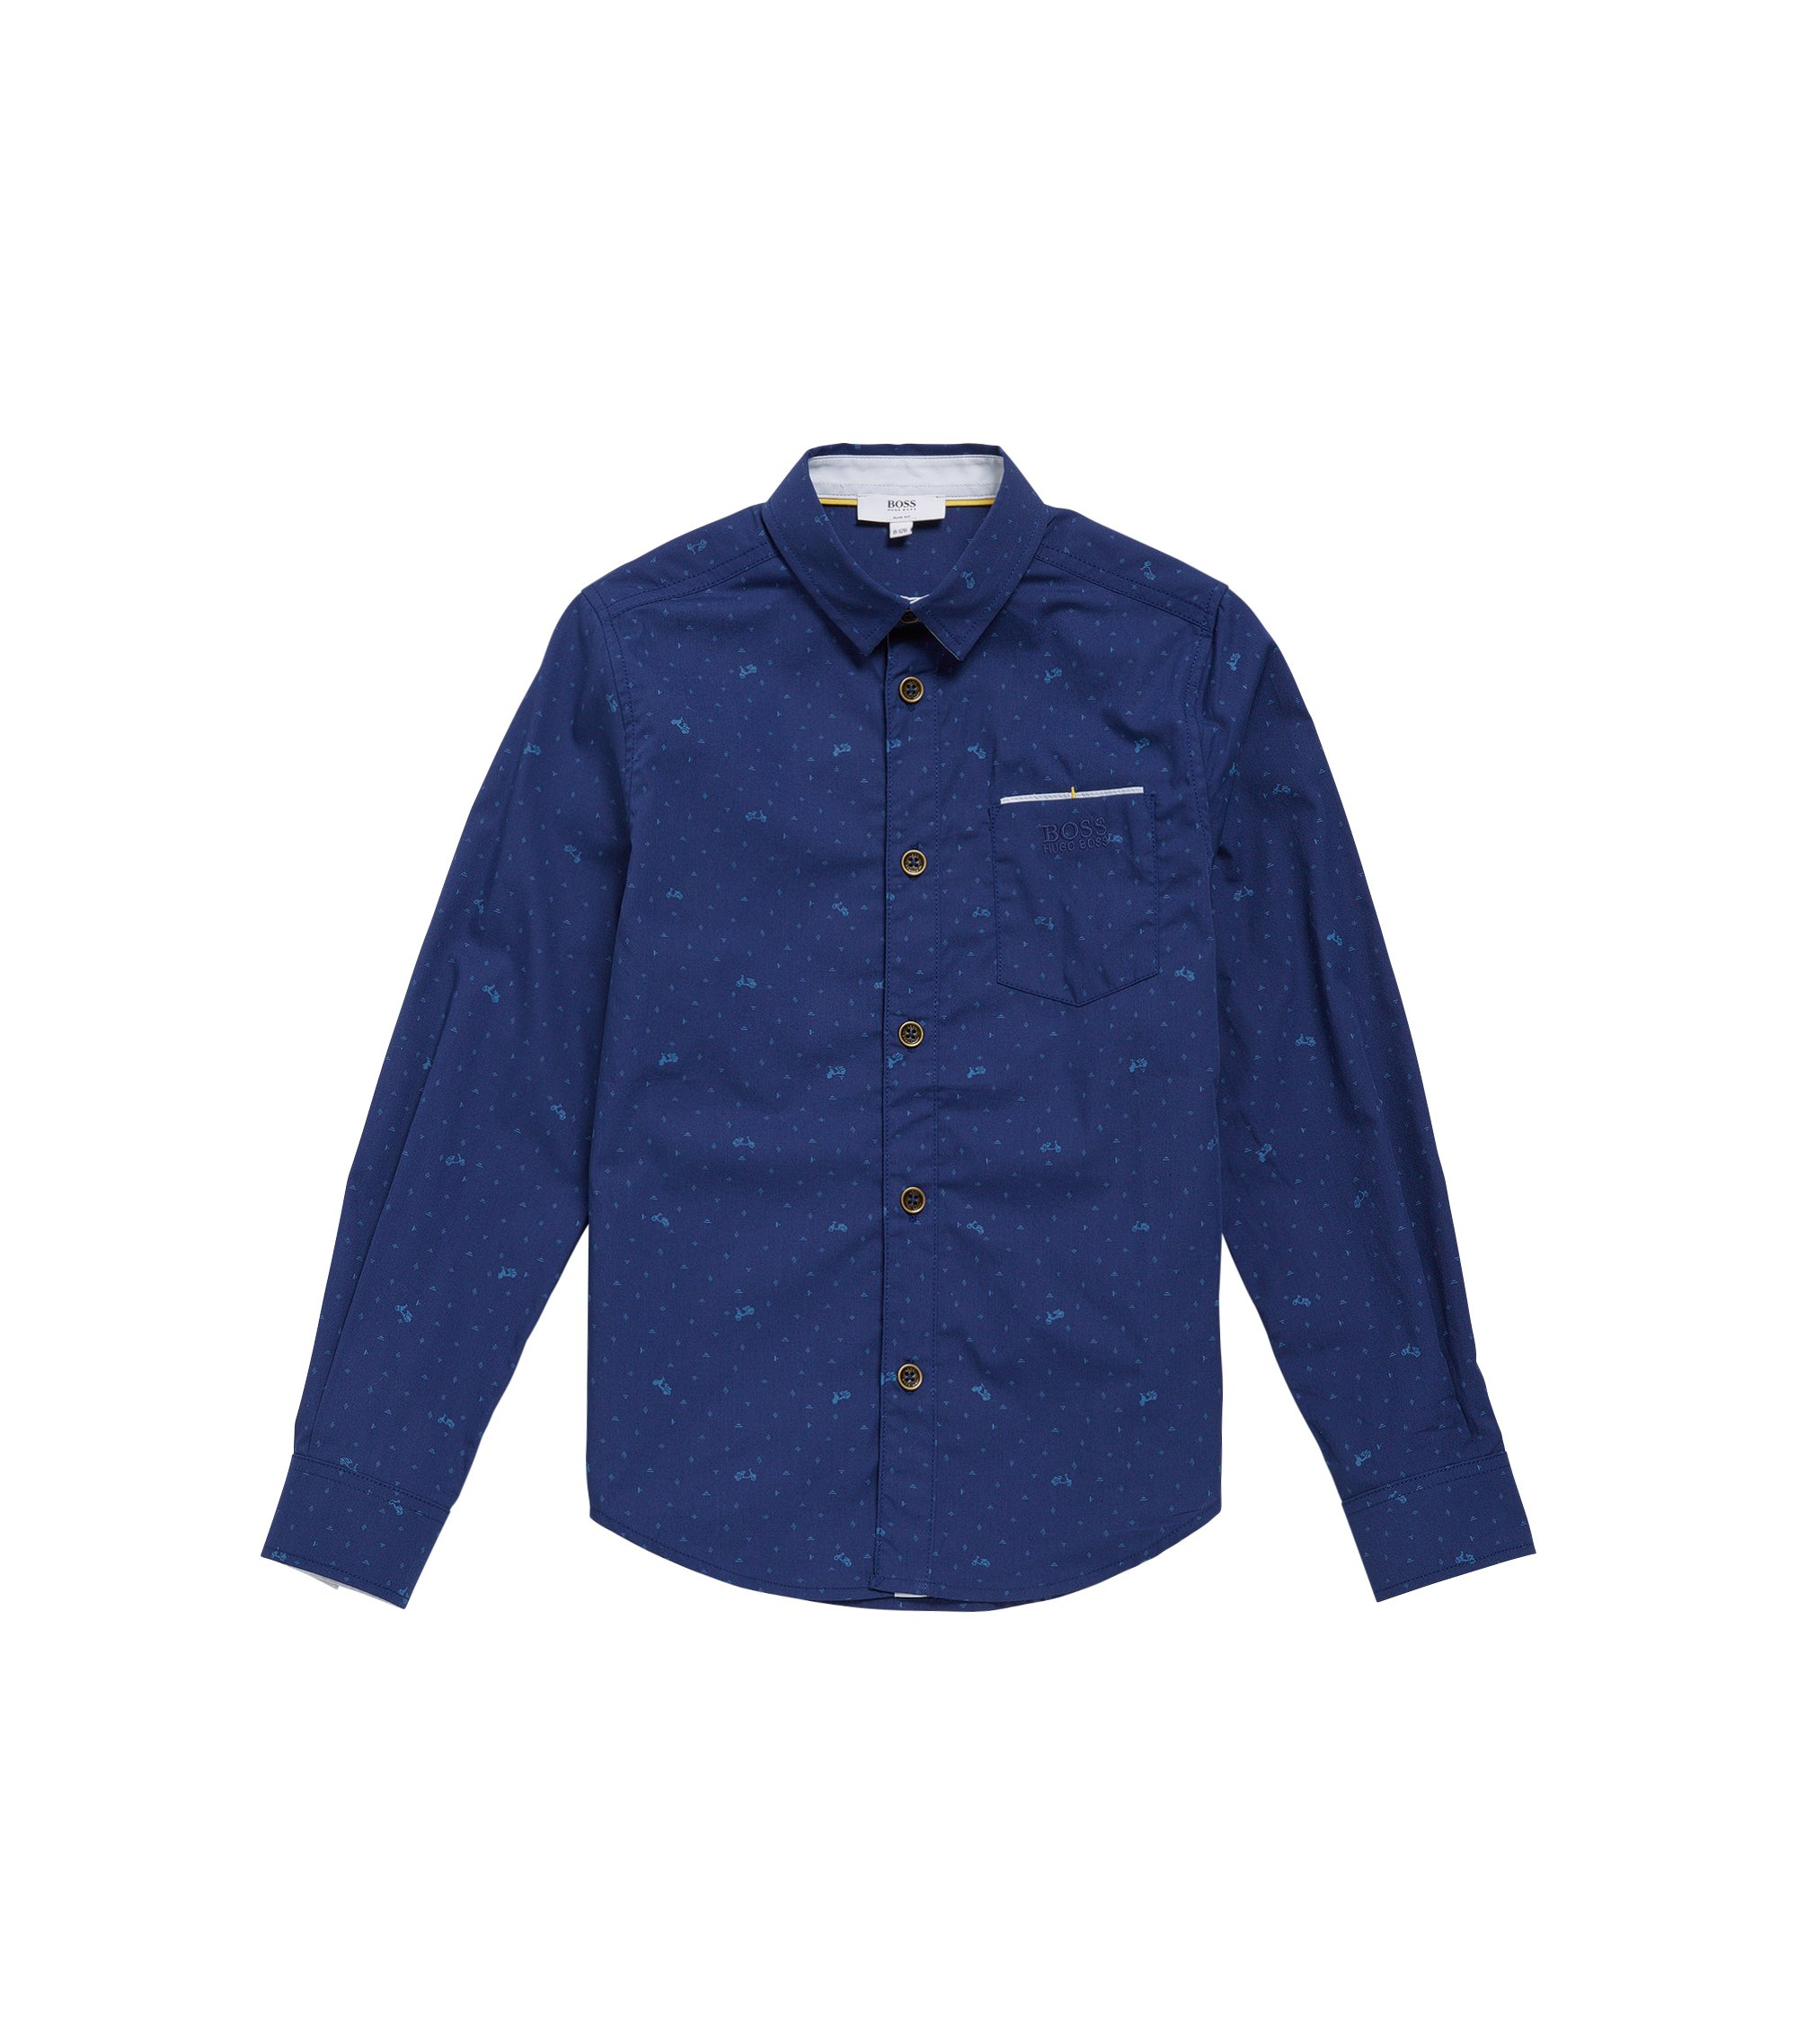 Slim-fit kids shirt in cotton with printed pattern: 'J25991', Dark Blue